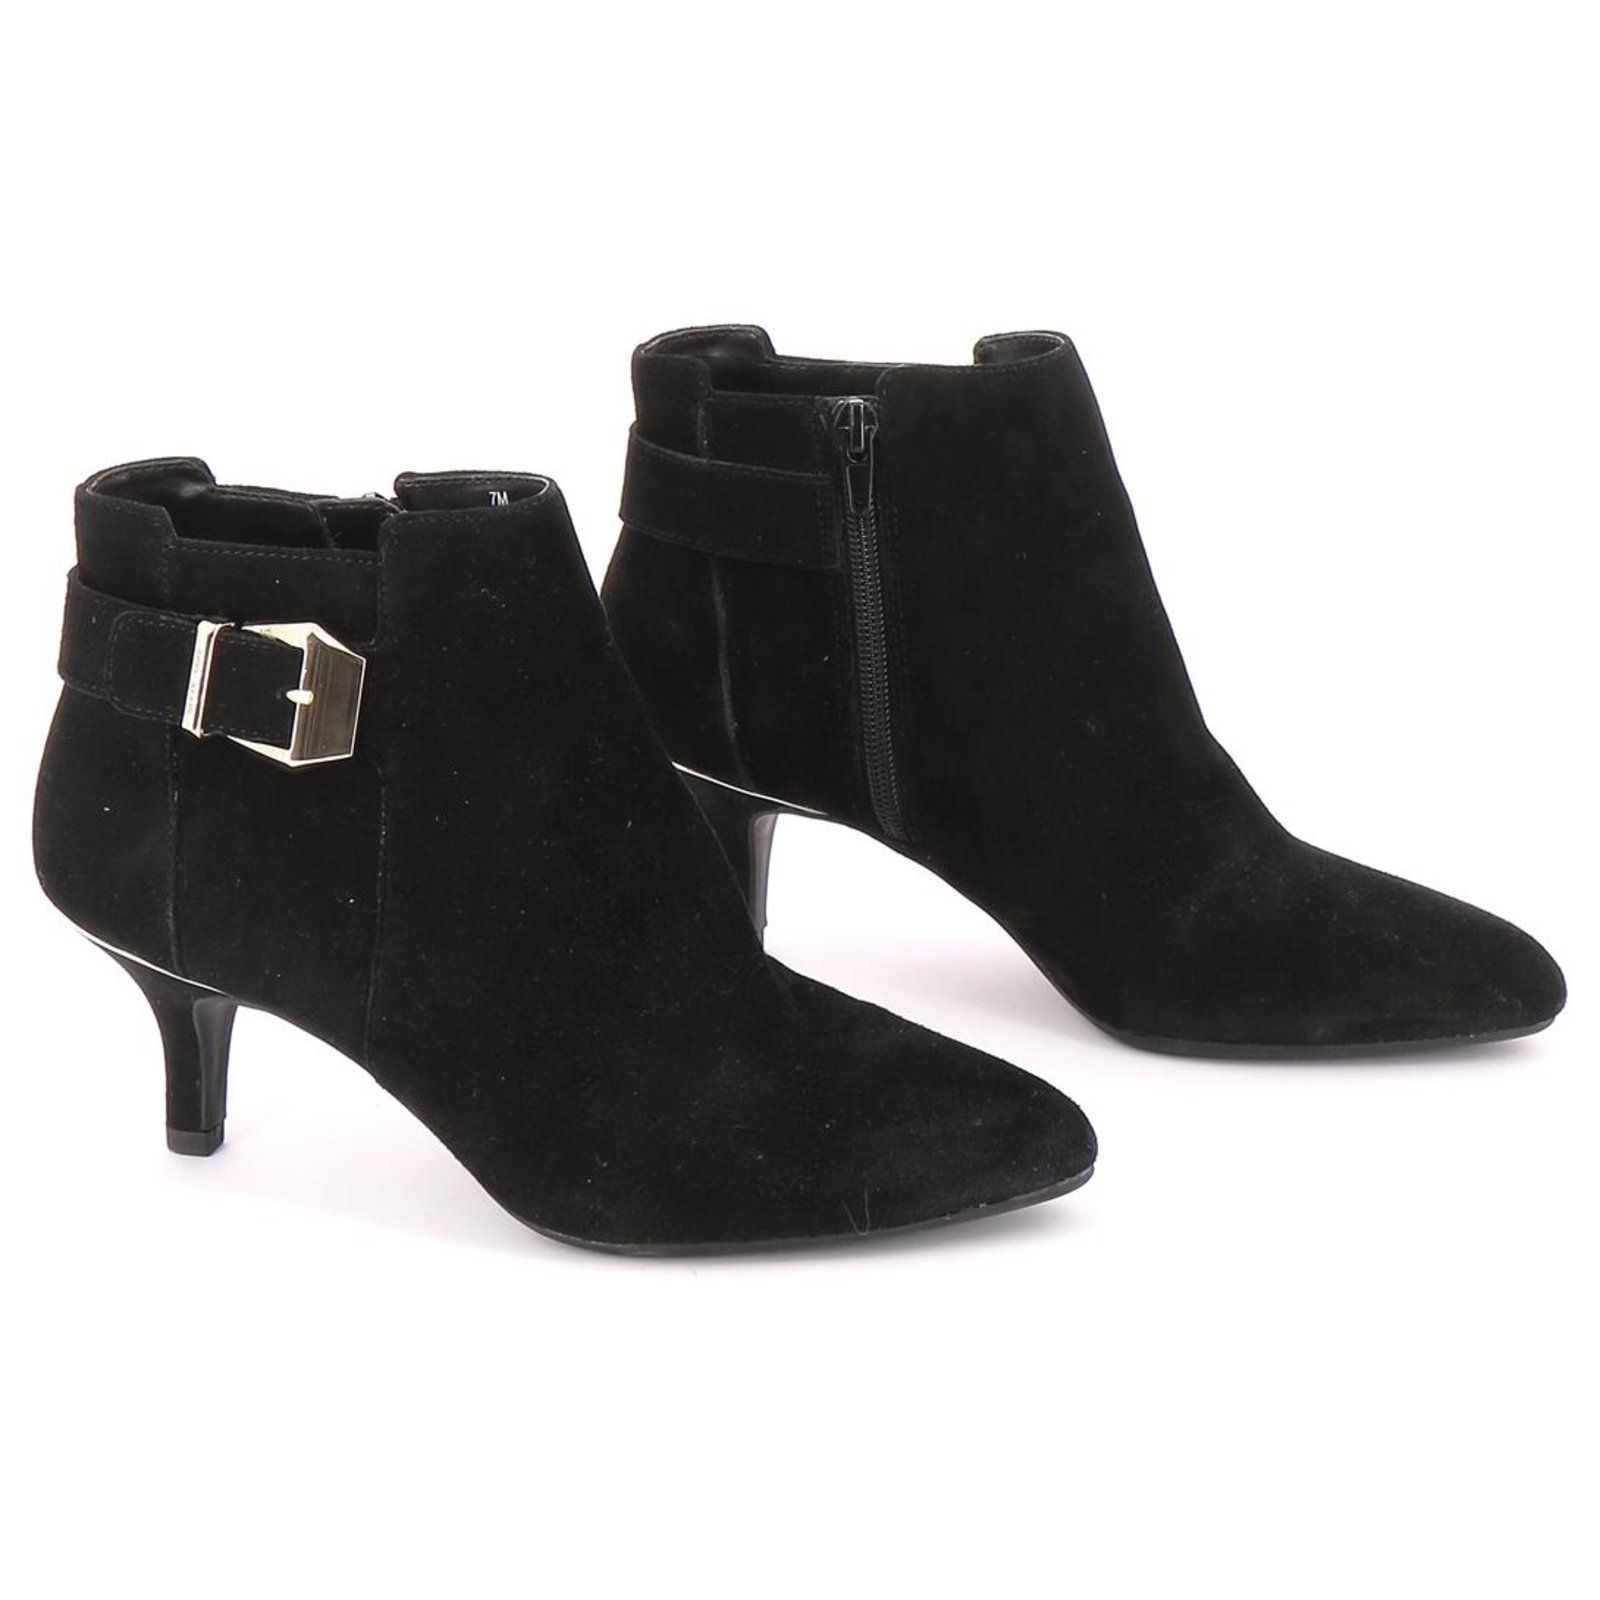 online for sale detailed images attractive price Anne Klein Ankle Boots / Low Boots Ankle Boots Leather Black ref ...